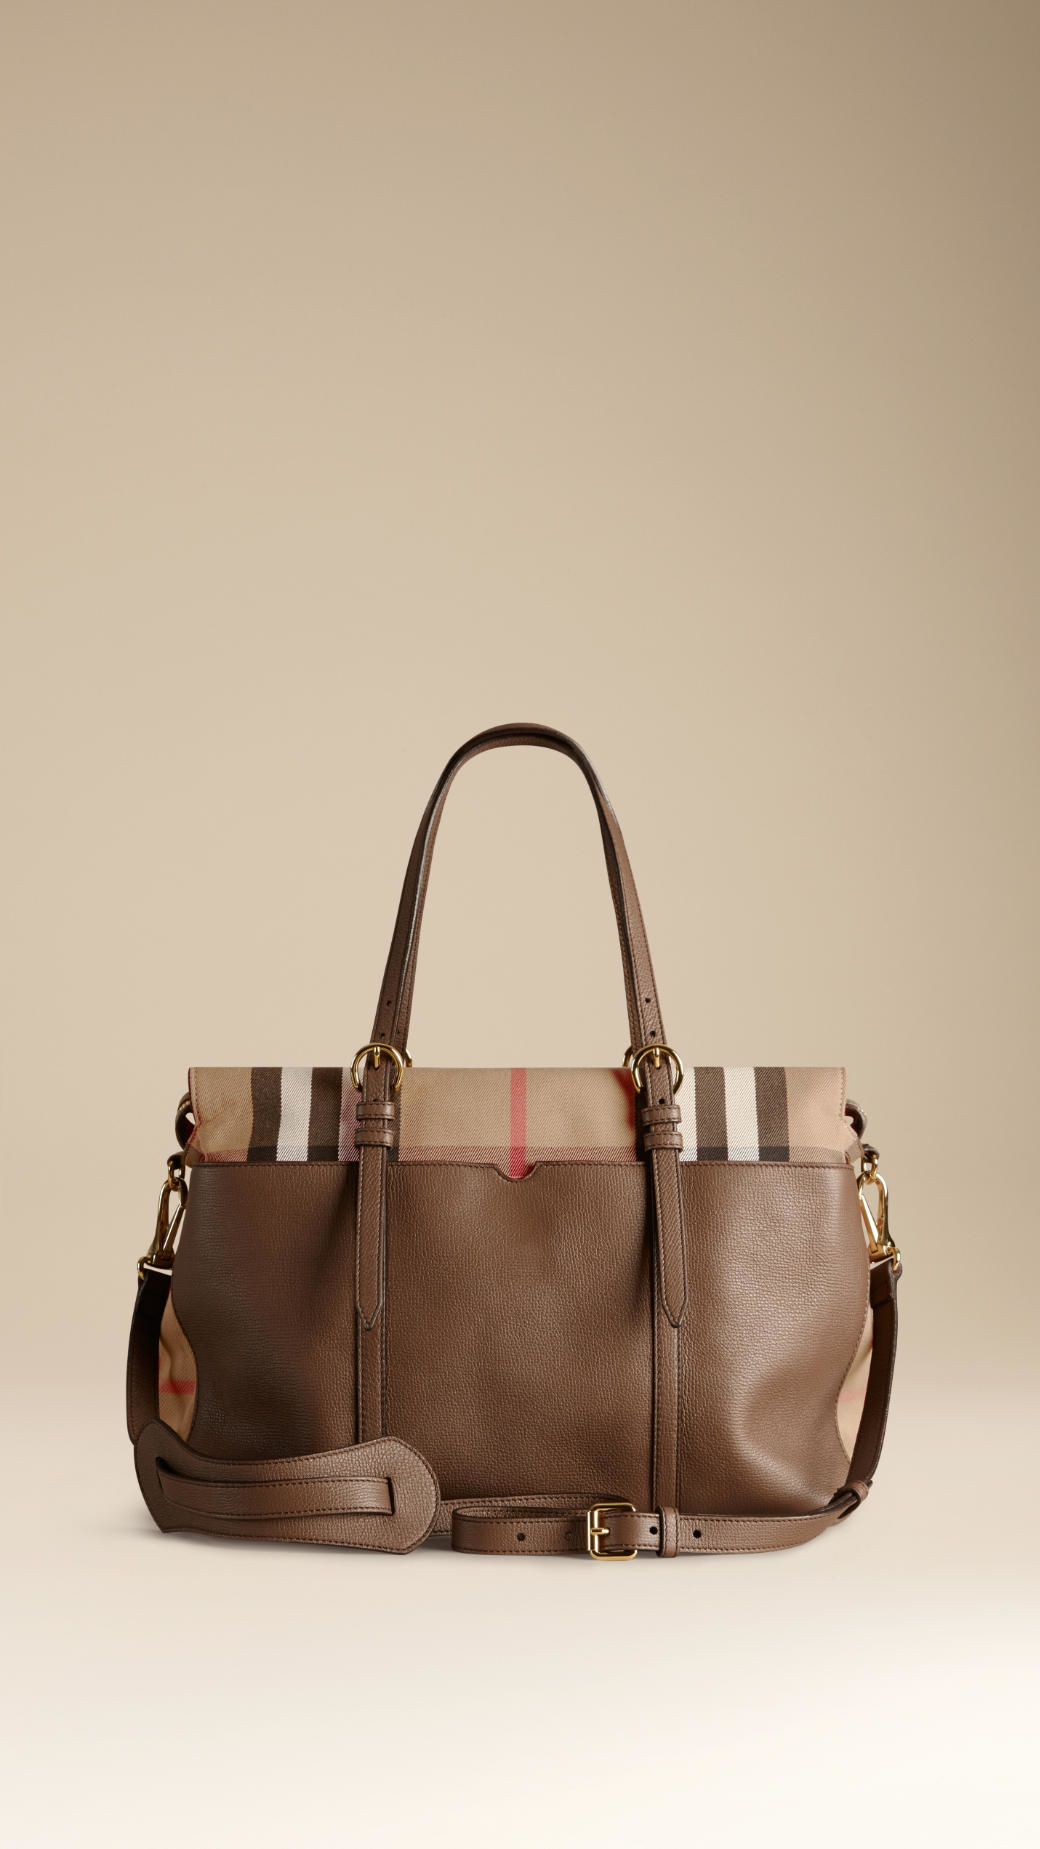 370a22e042d2 Lyst - Burberry House Check And Leather Baby Changing Bag in Brown